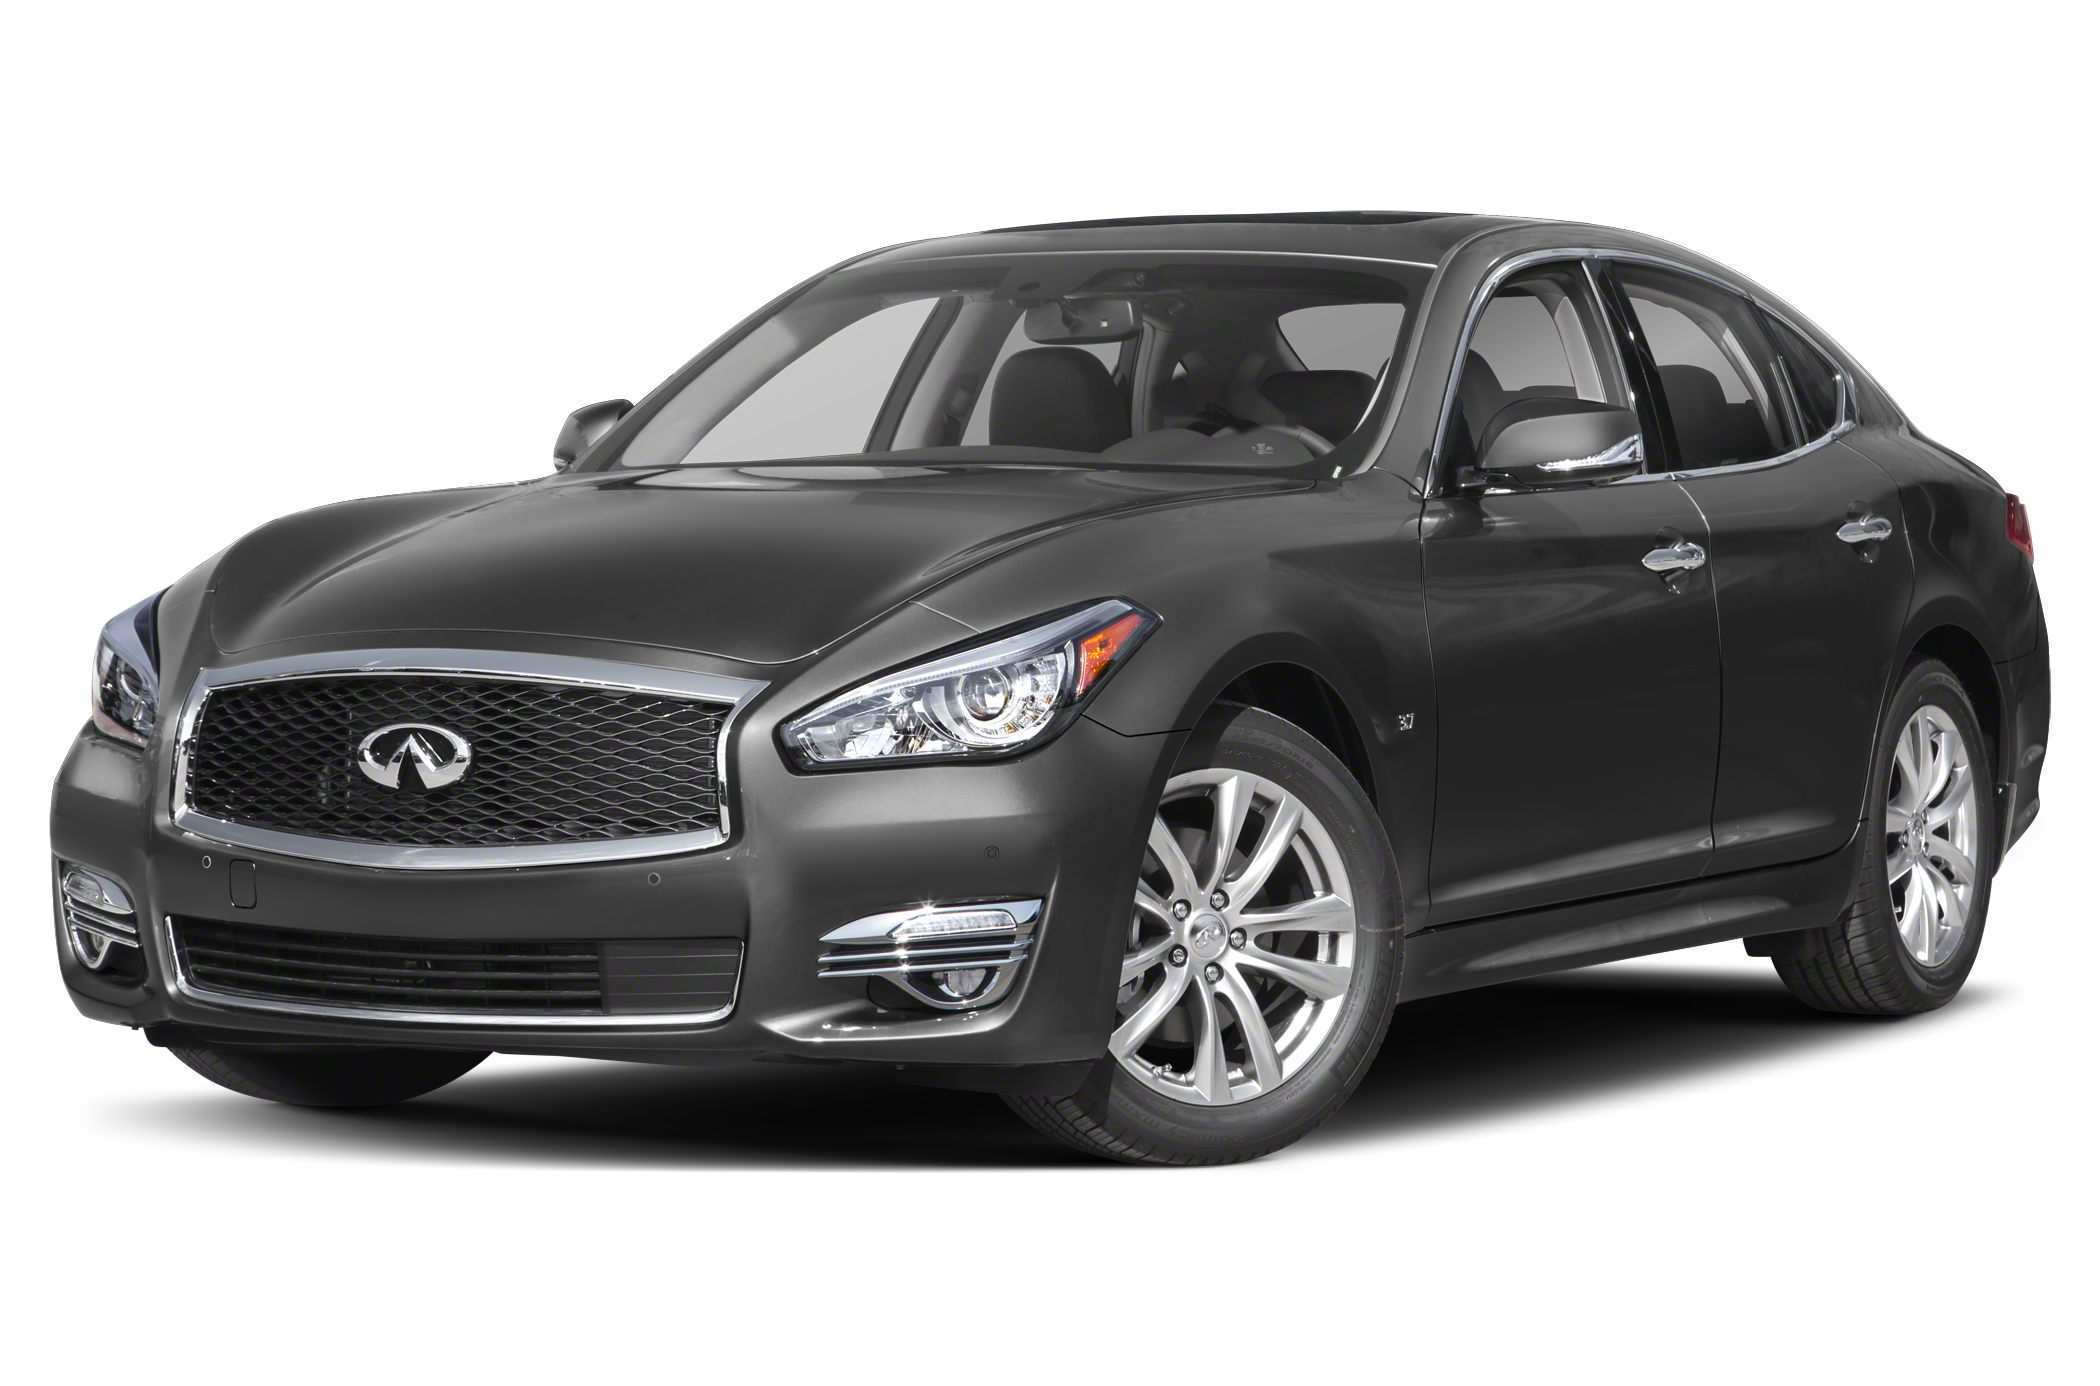 75 The 2019 Infiniti Q70 Spesification